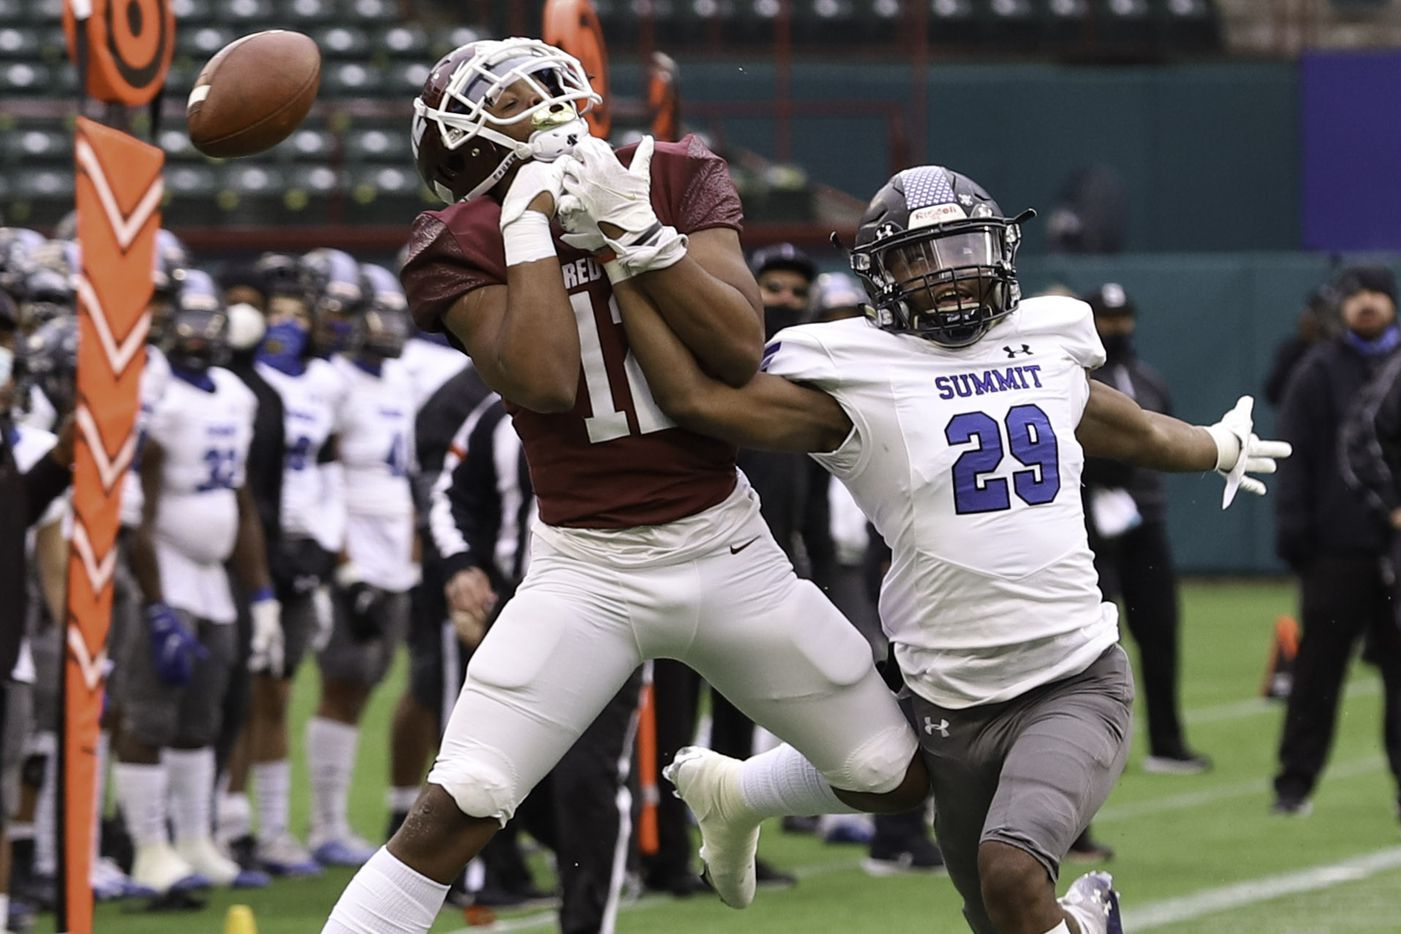 Mansfield Summit defensive back Aiden Armstrong (29) breaks up a pass intended for Red Oak wide receiver Jace Wyatt (12) during the first half at Globe Life Park in Arlington, Texas, Friday, Jan. 1, 2021. (Elias Valverde II / Special Contributor)